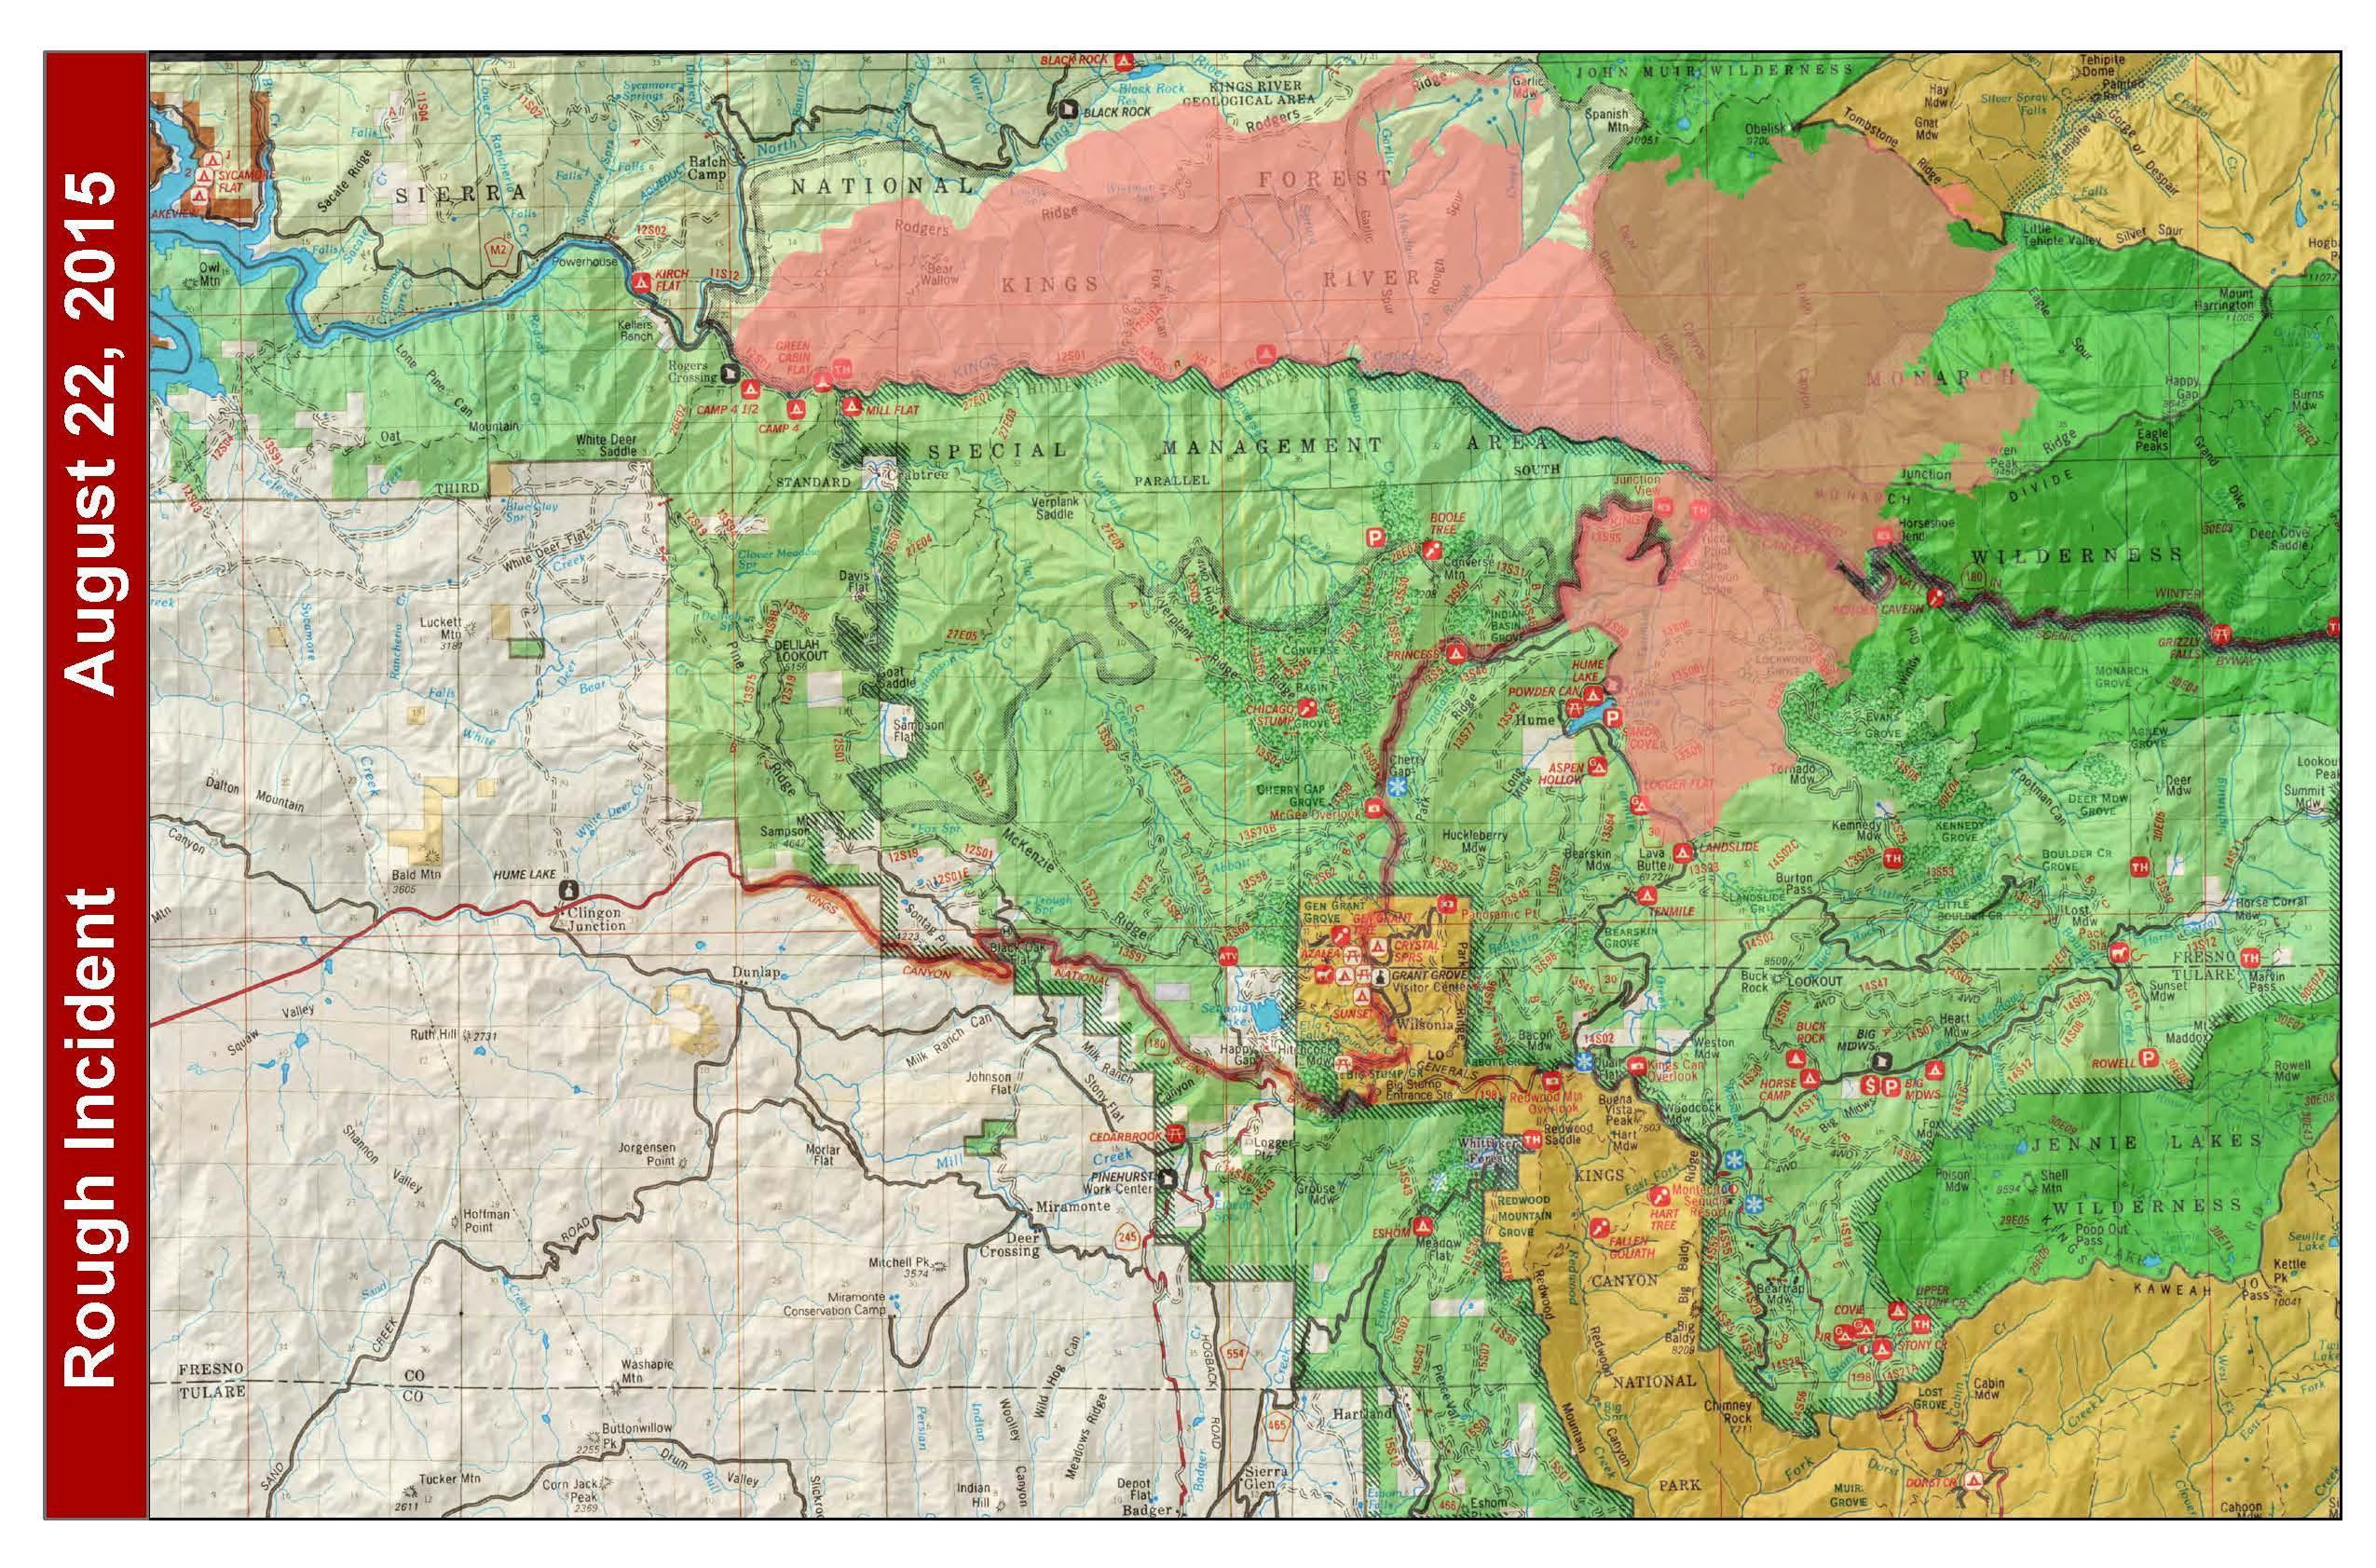 Lake Isabella Fire Map.Rough Fire Update Raining Ash In Fresno The California Report